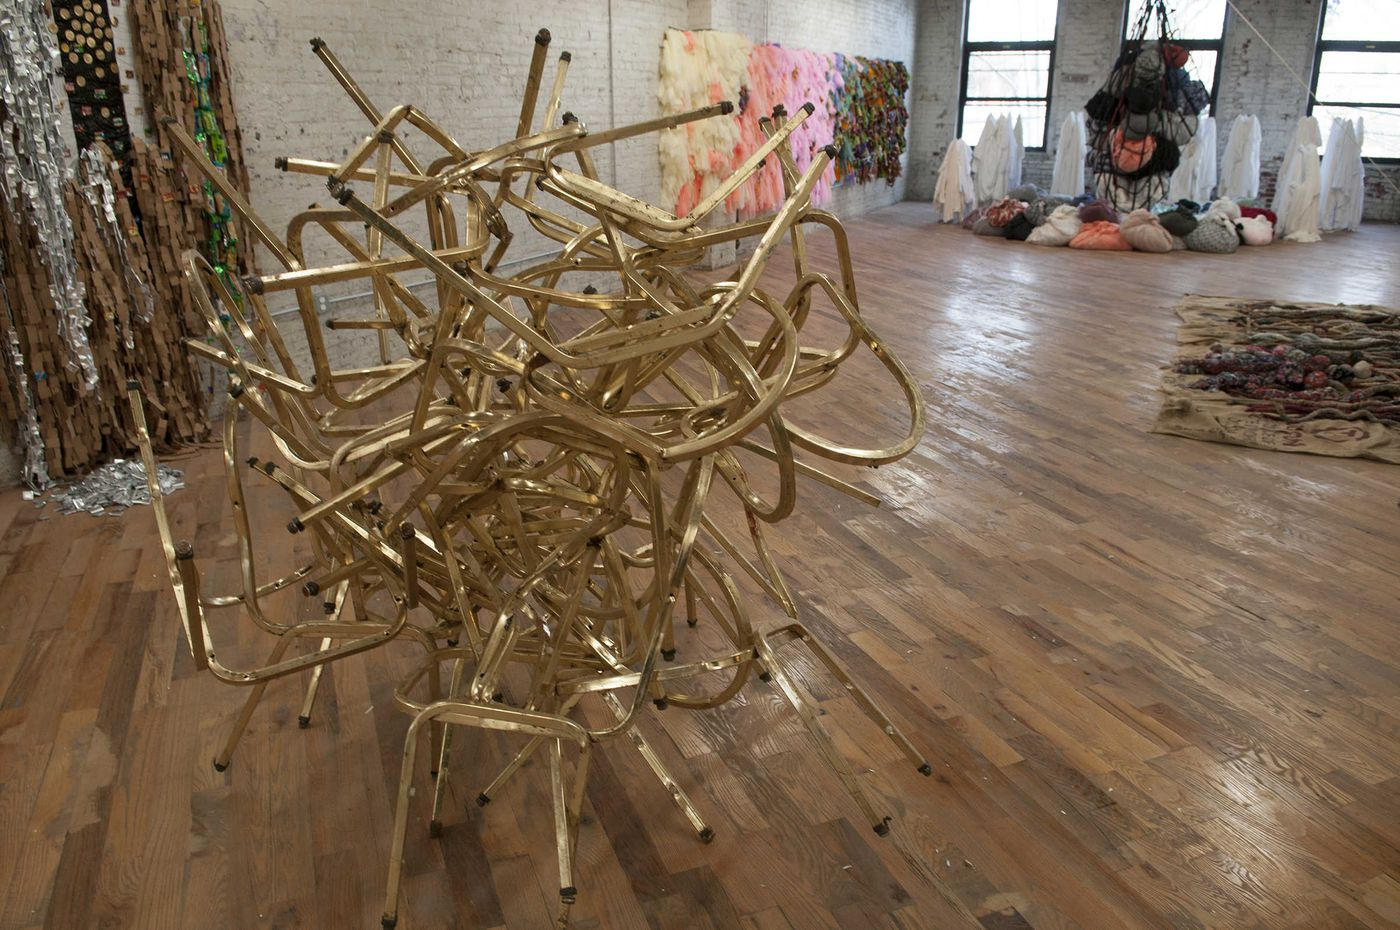 North Philly's makeshift memorials inspired a Nigerian artist's monumental new work